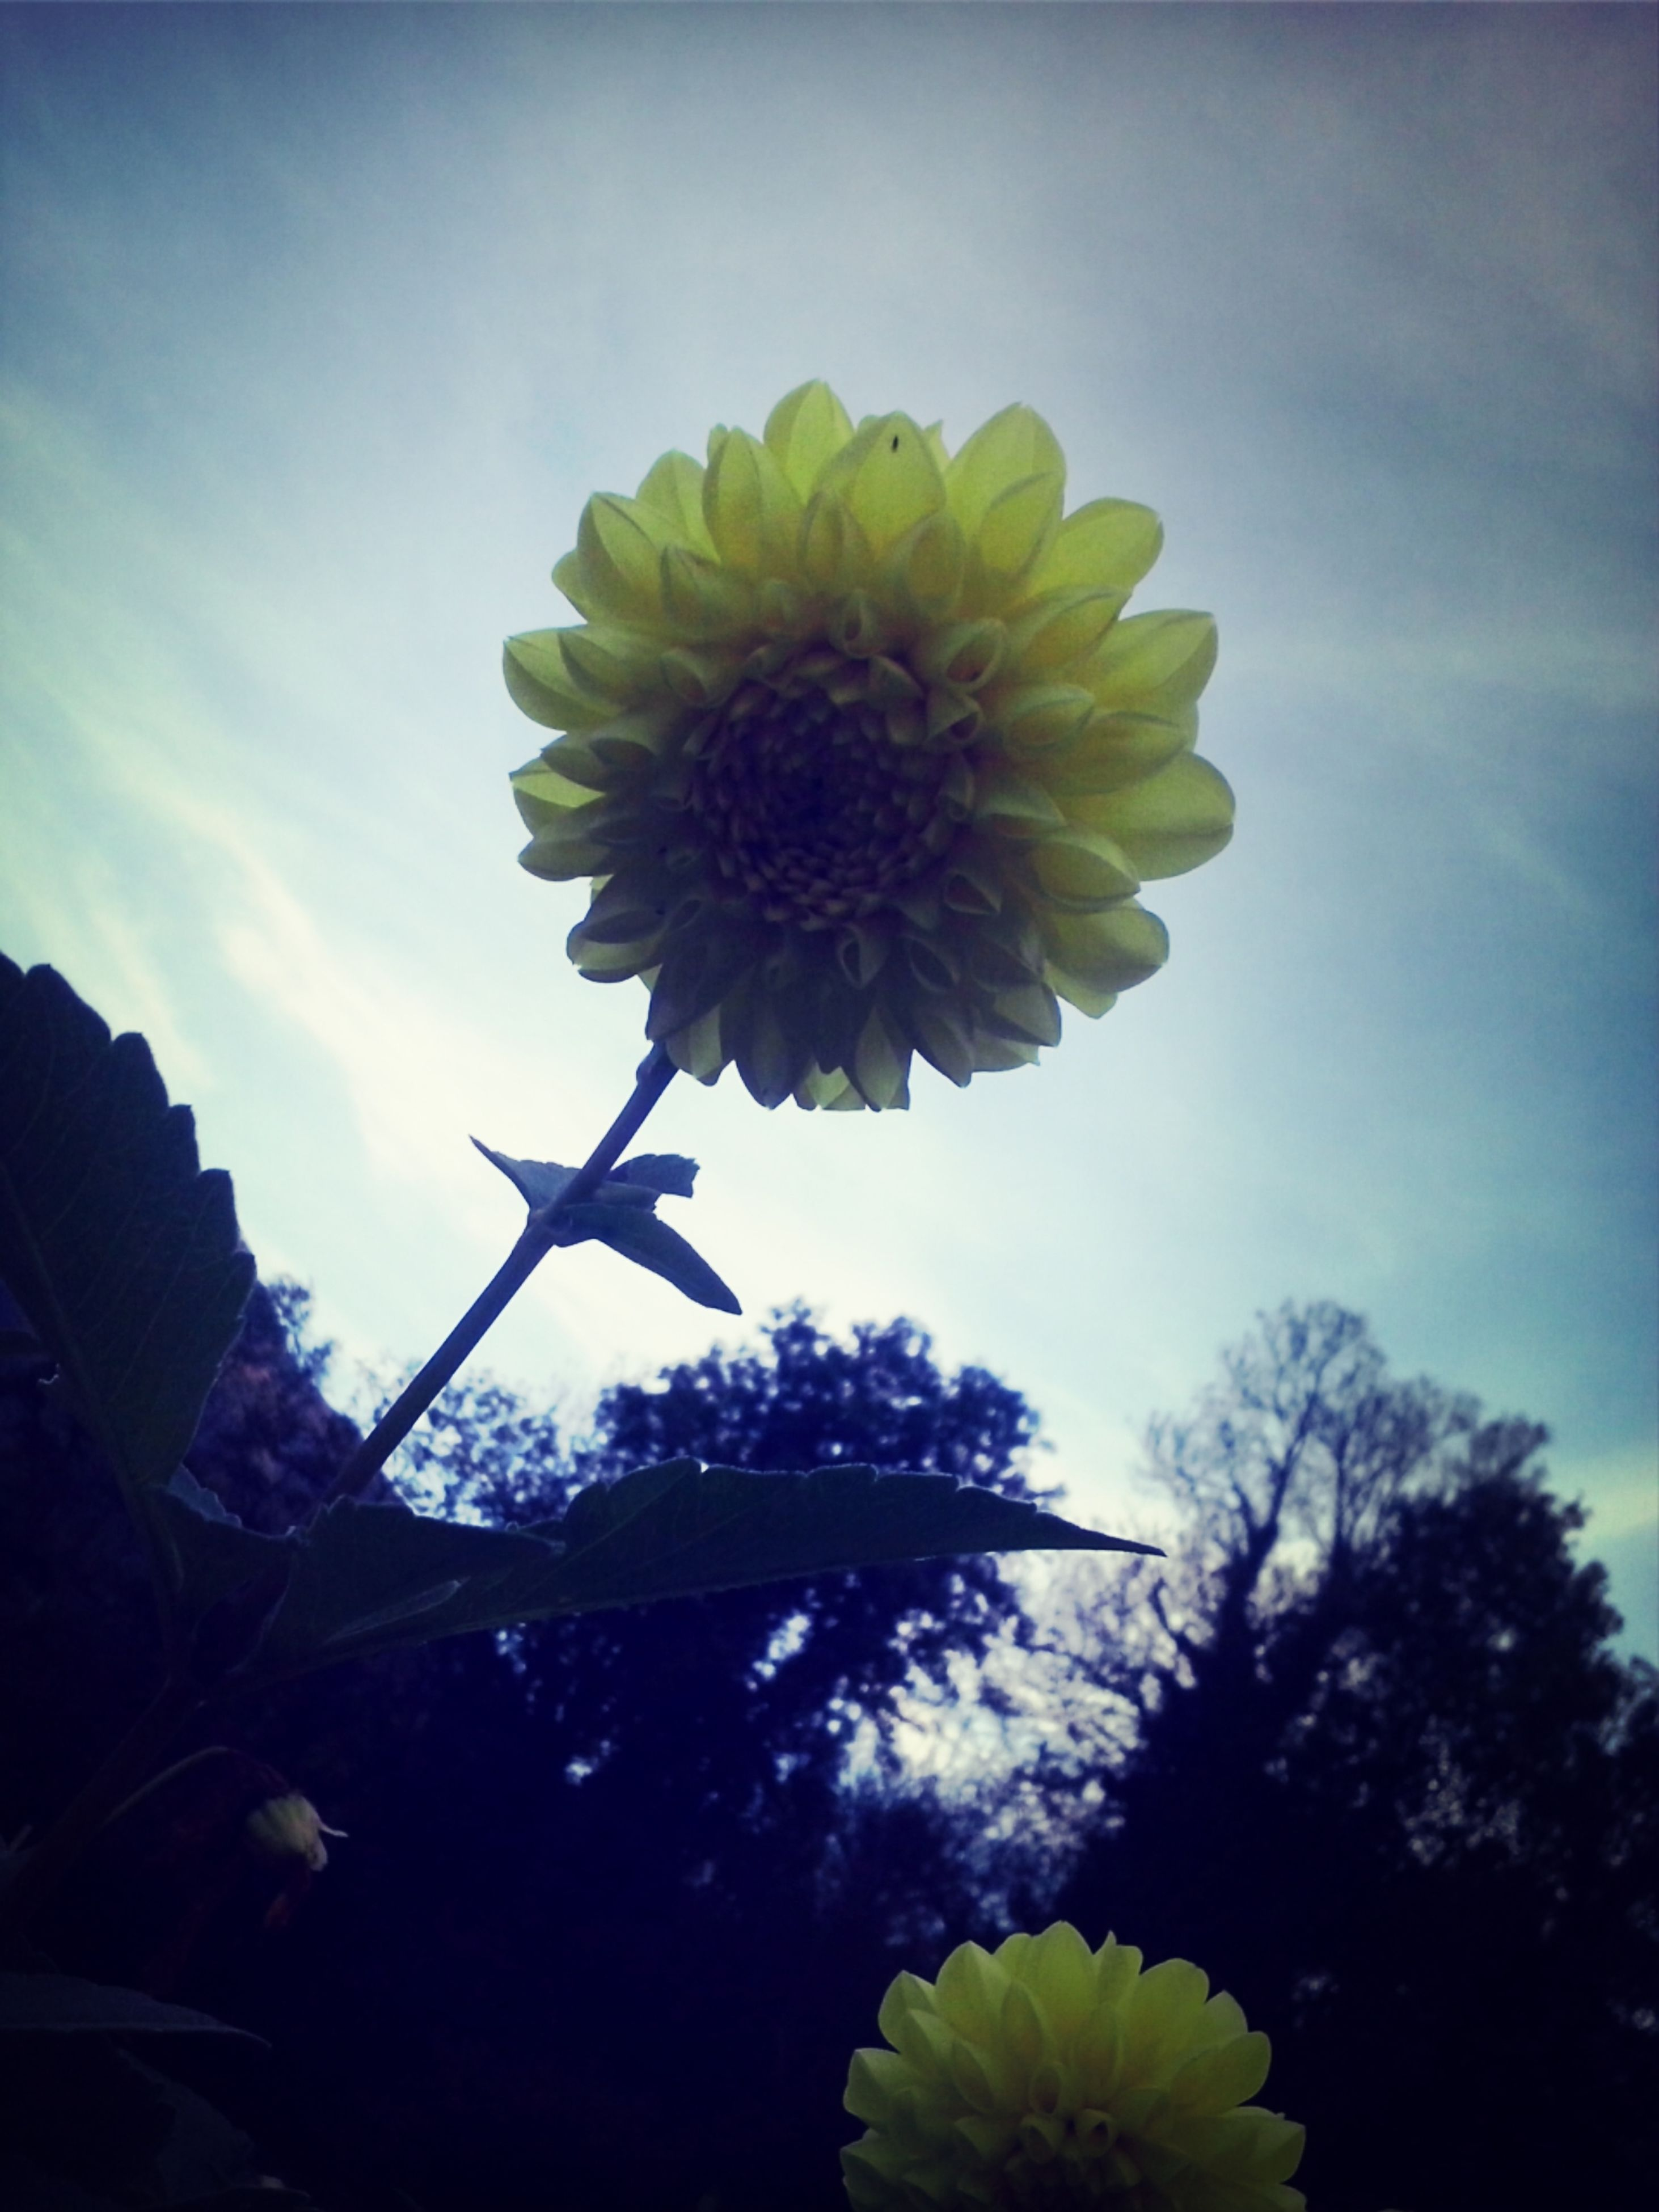 flower, low angle view, growth, sky, freshness, fragility, beauty in nature, petal, nature, yellow, flower head, blooming, plant, single flower, close-up, tree, in bloom, stem, cloud - sky, outdoors